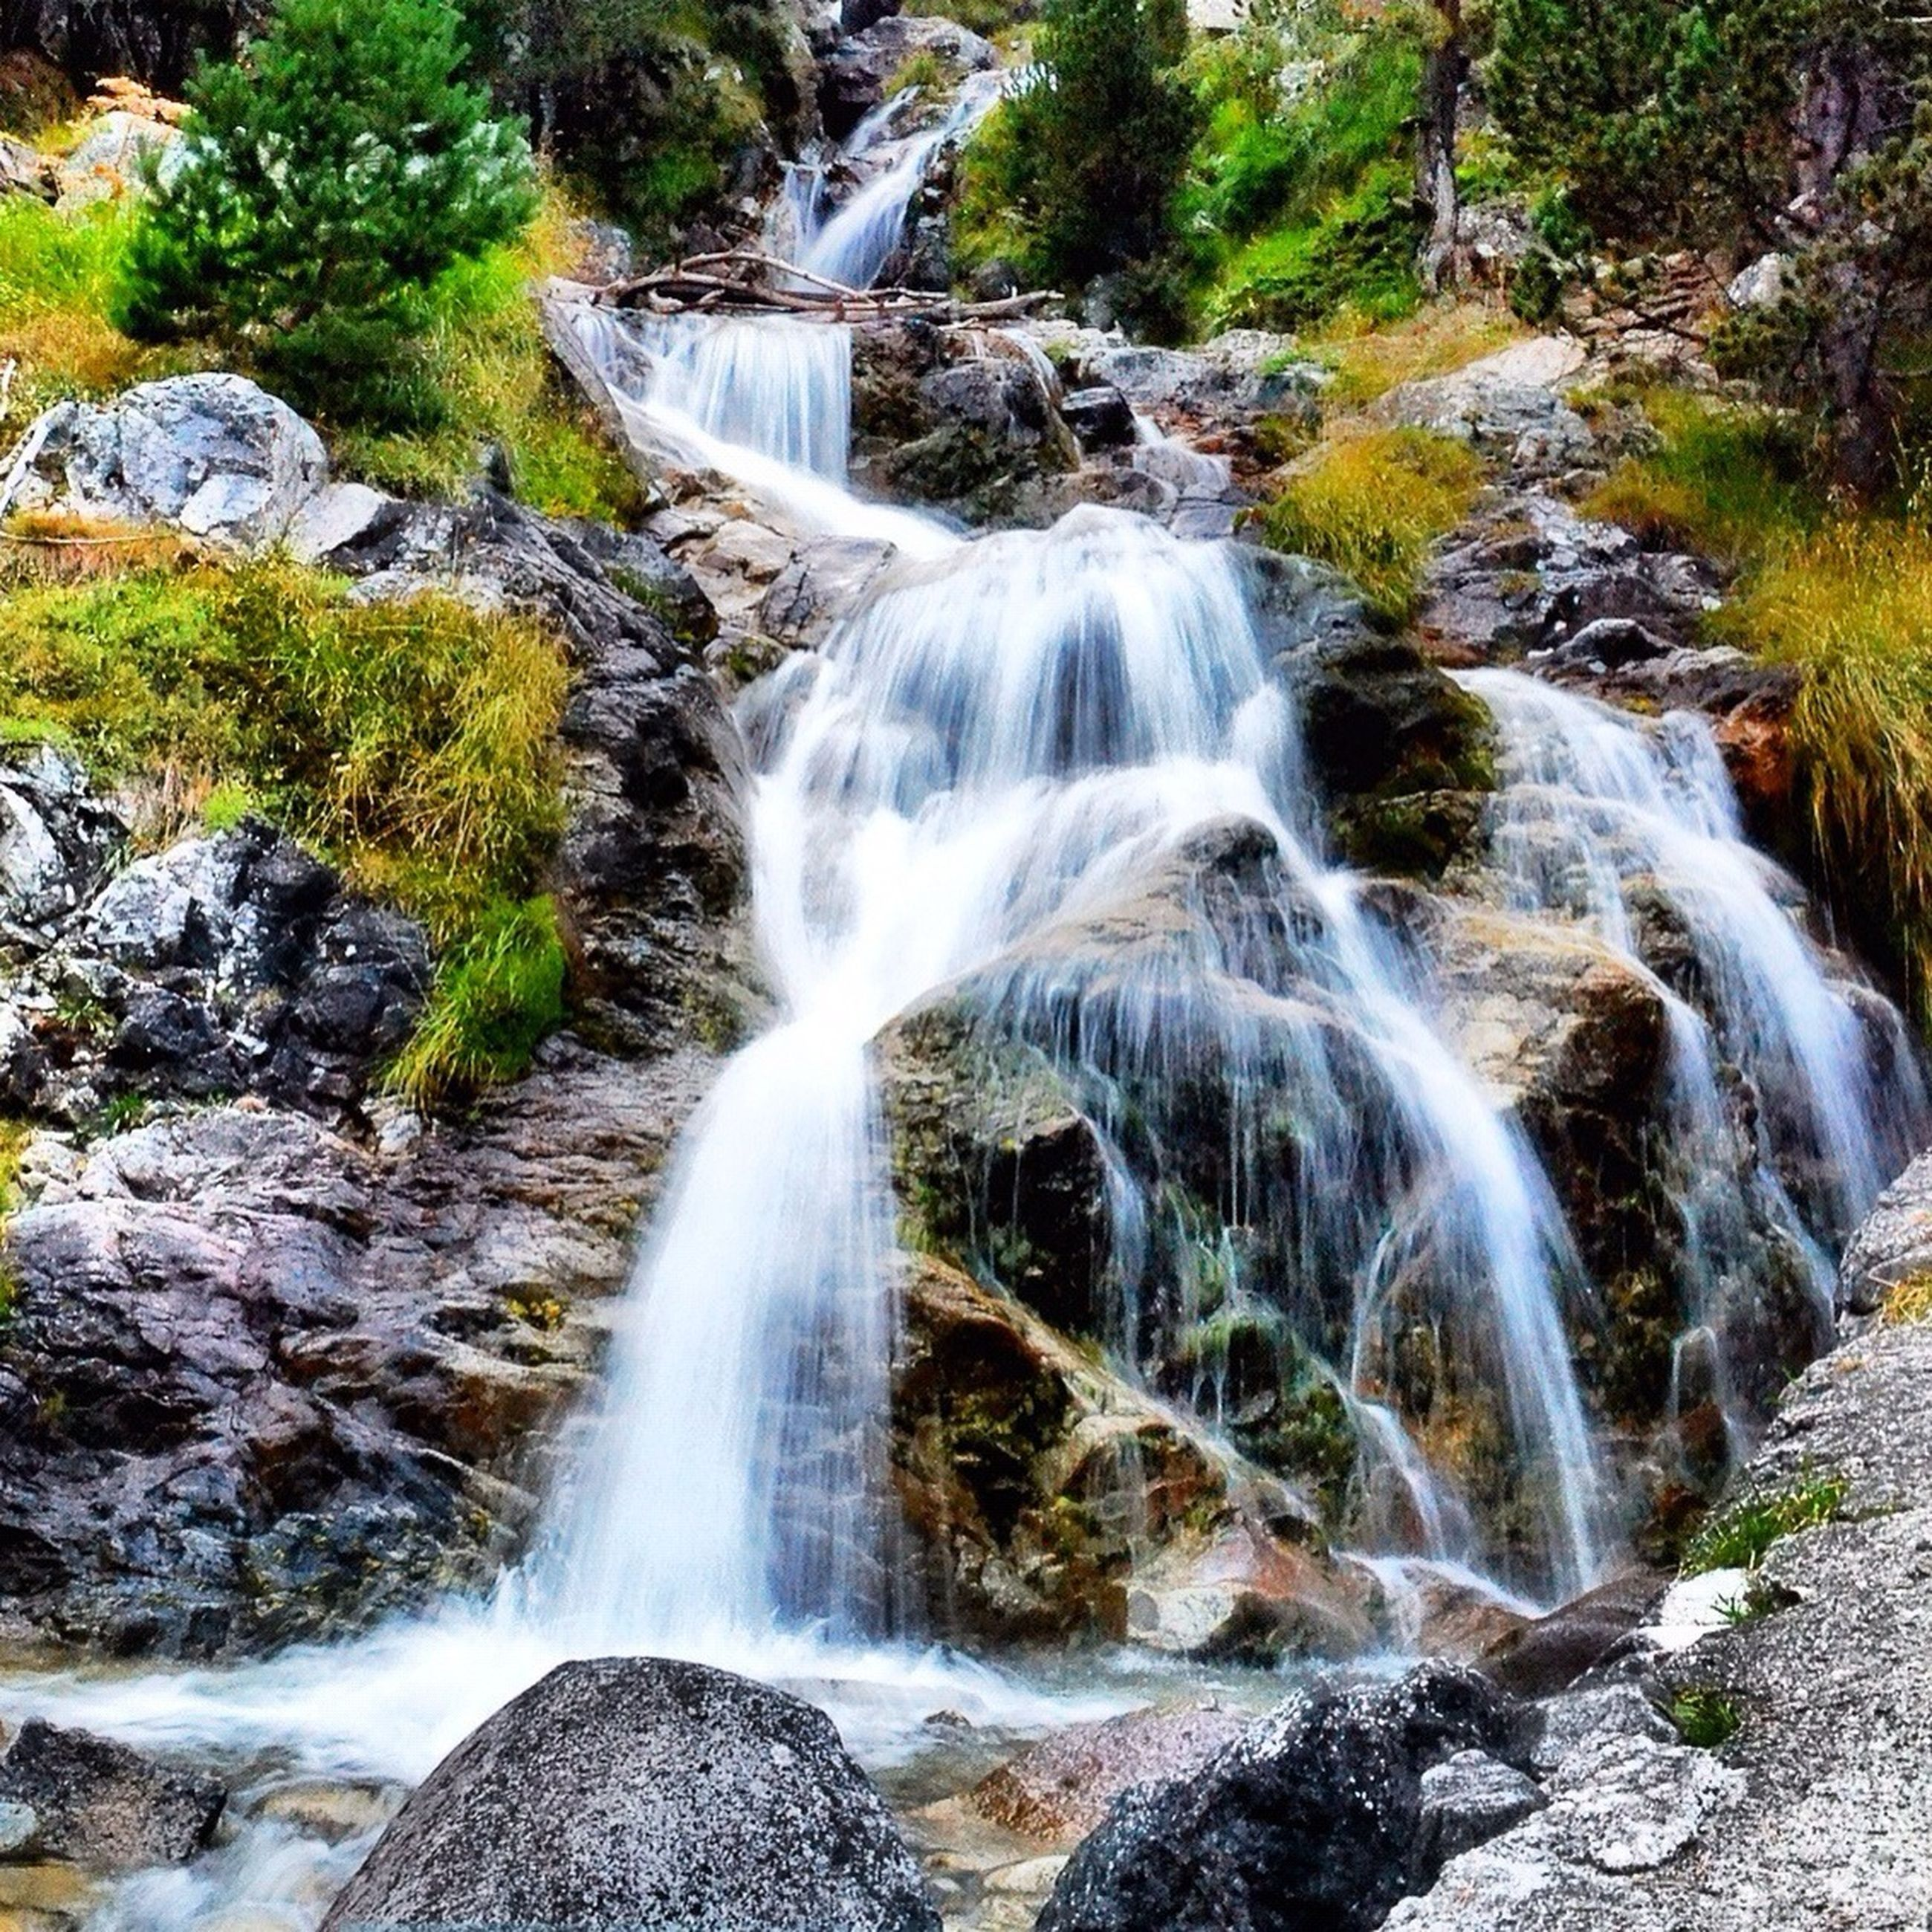 waterfall, water, flowing water, motion, rock - object, flowing, long exposure, beauty in nature, forest, nature, stream, scenics, rock, rock formation, river, plant, day, blurred motion, tree, outdoors